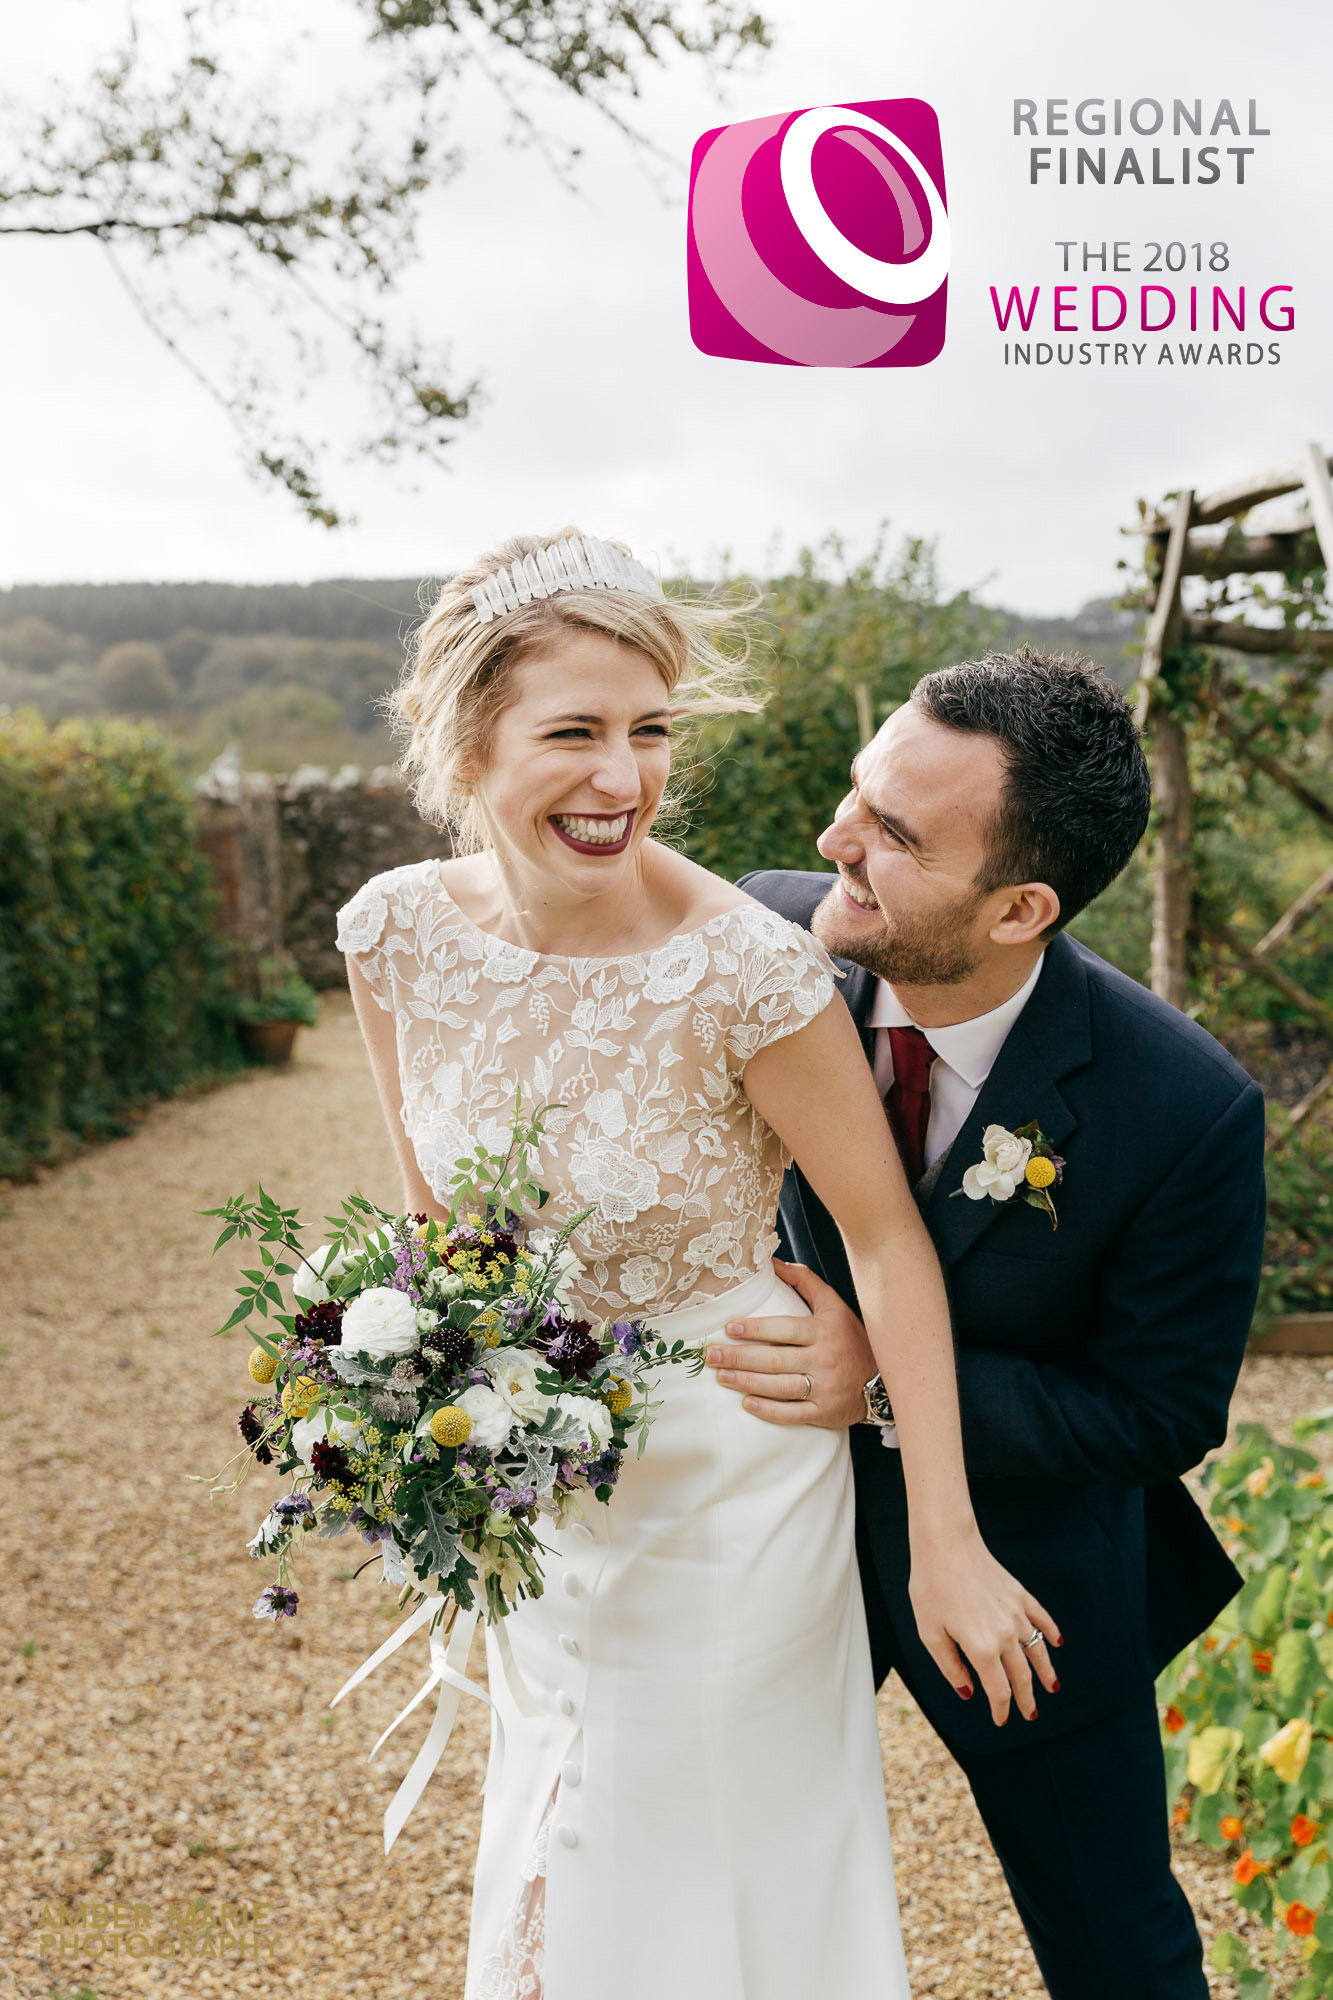 Best Creative Wedding Photographer Gloucestershire